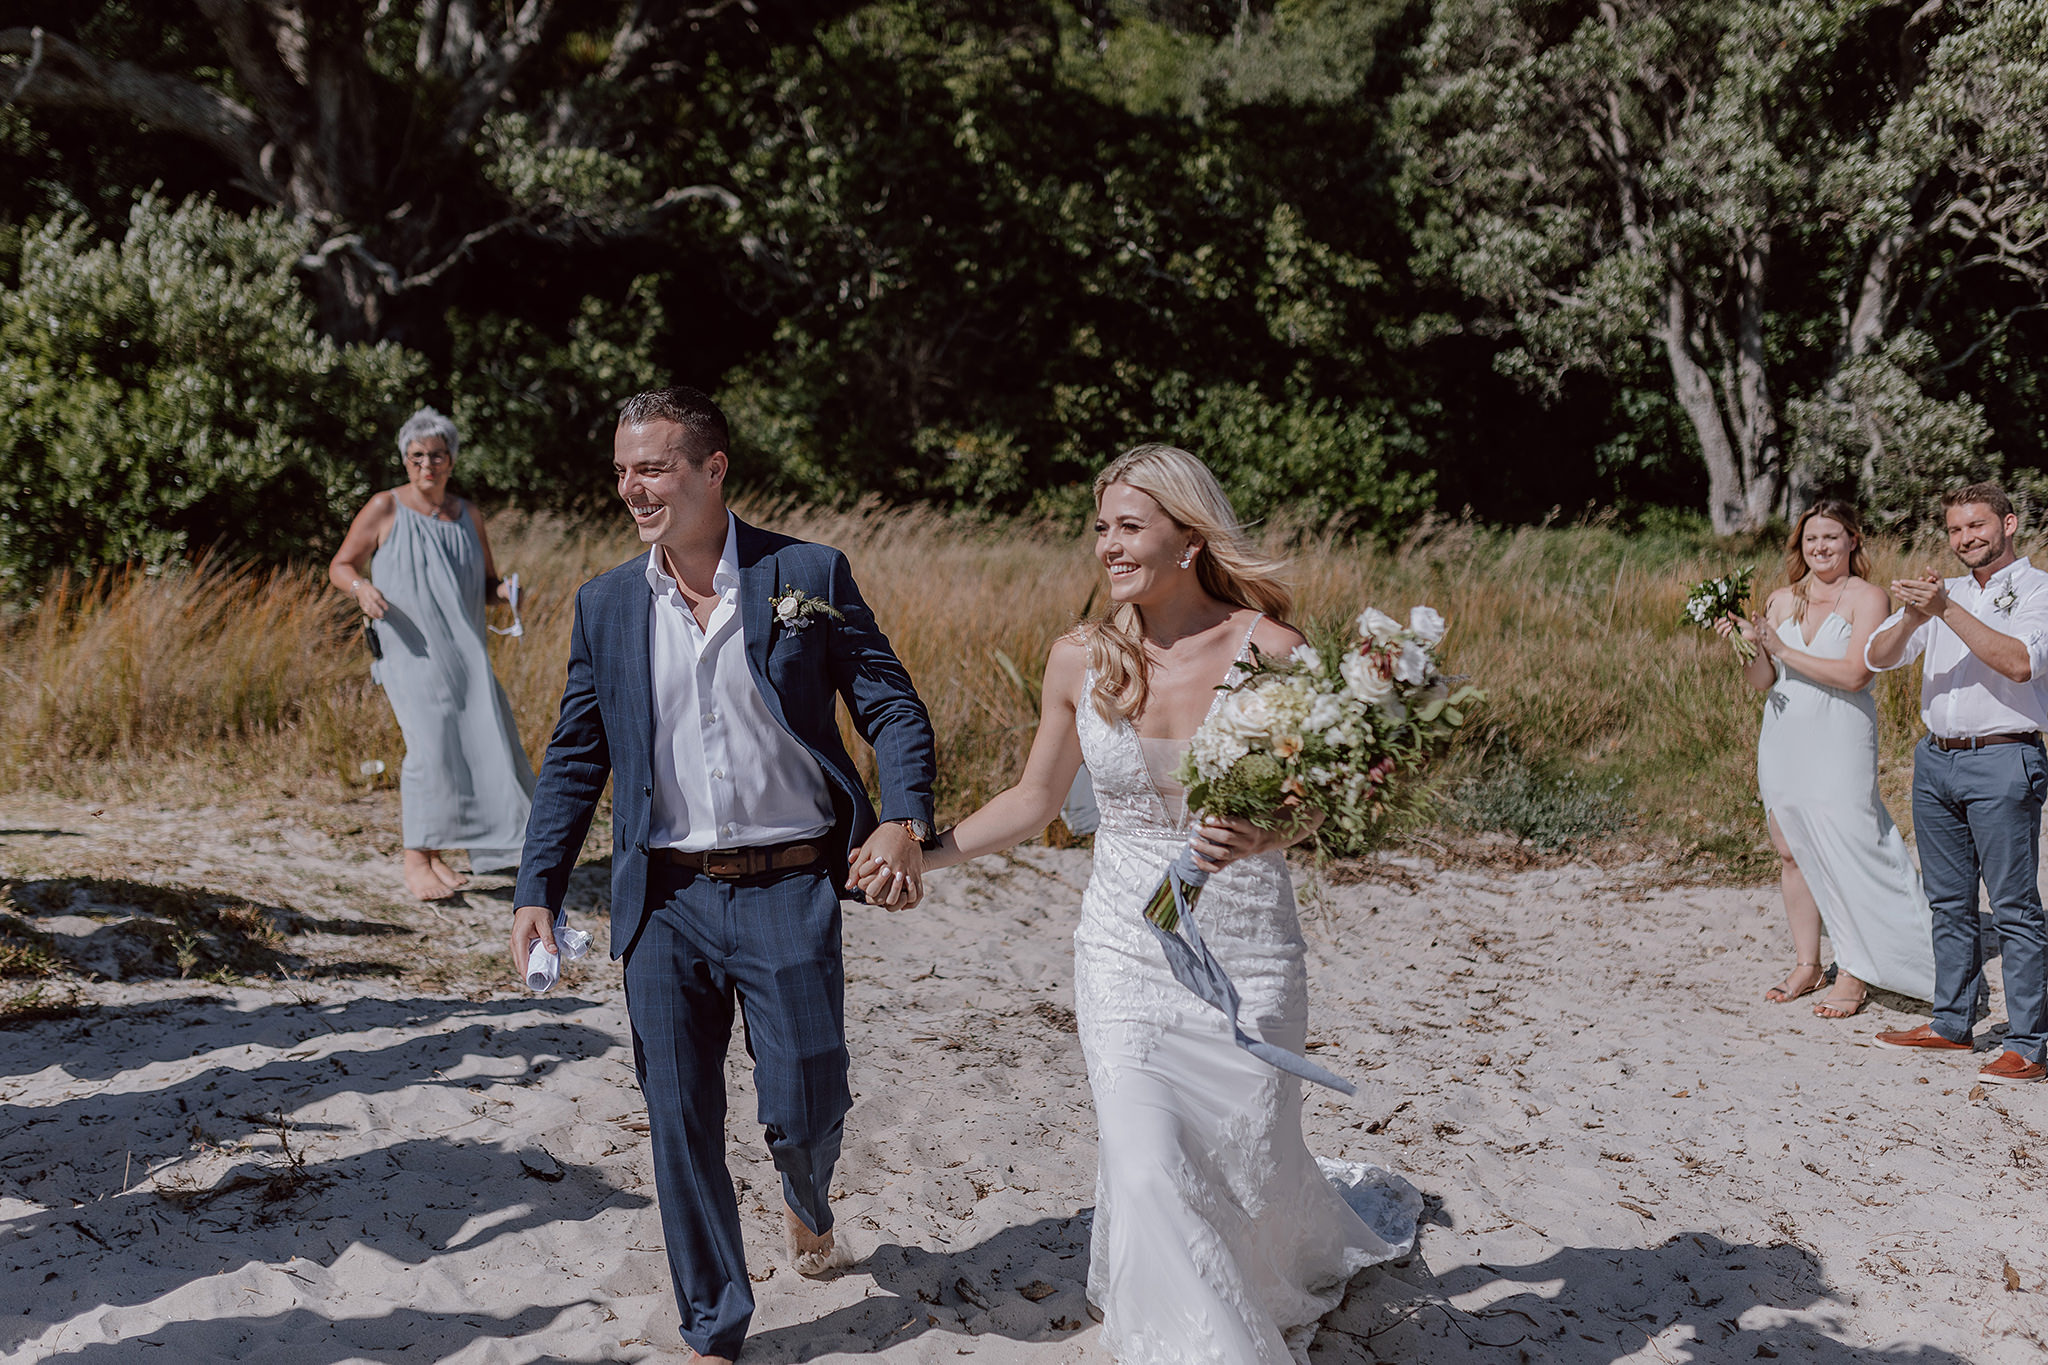 kelly-logan-whangapoua-wedding-jackson-bright20190212_0429.jpg